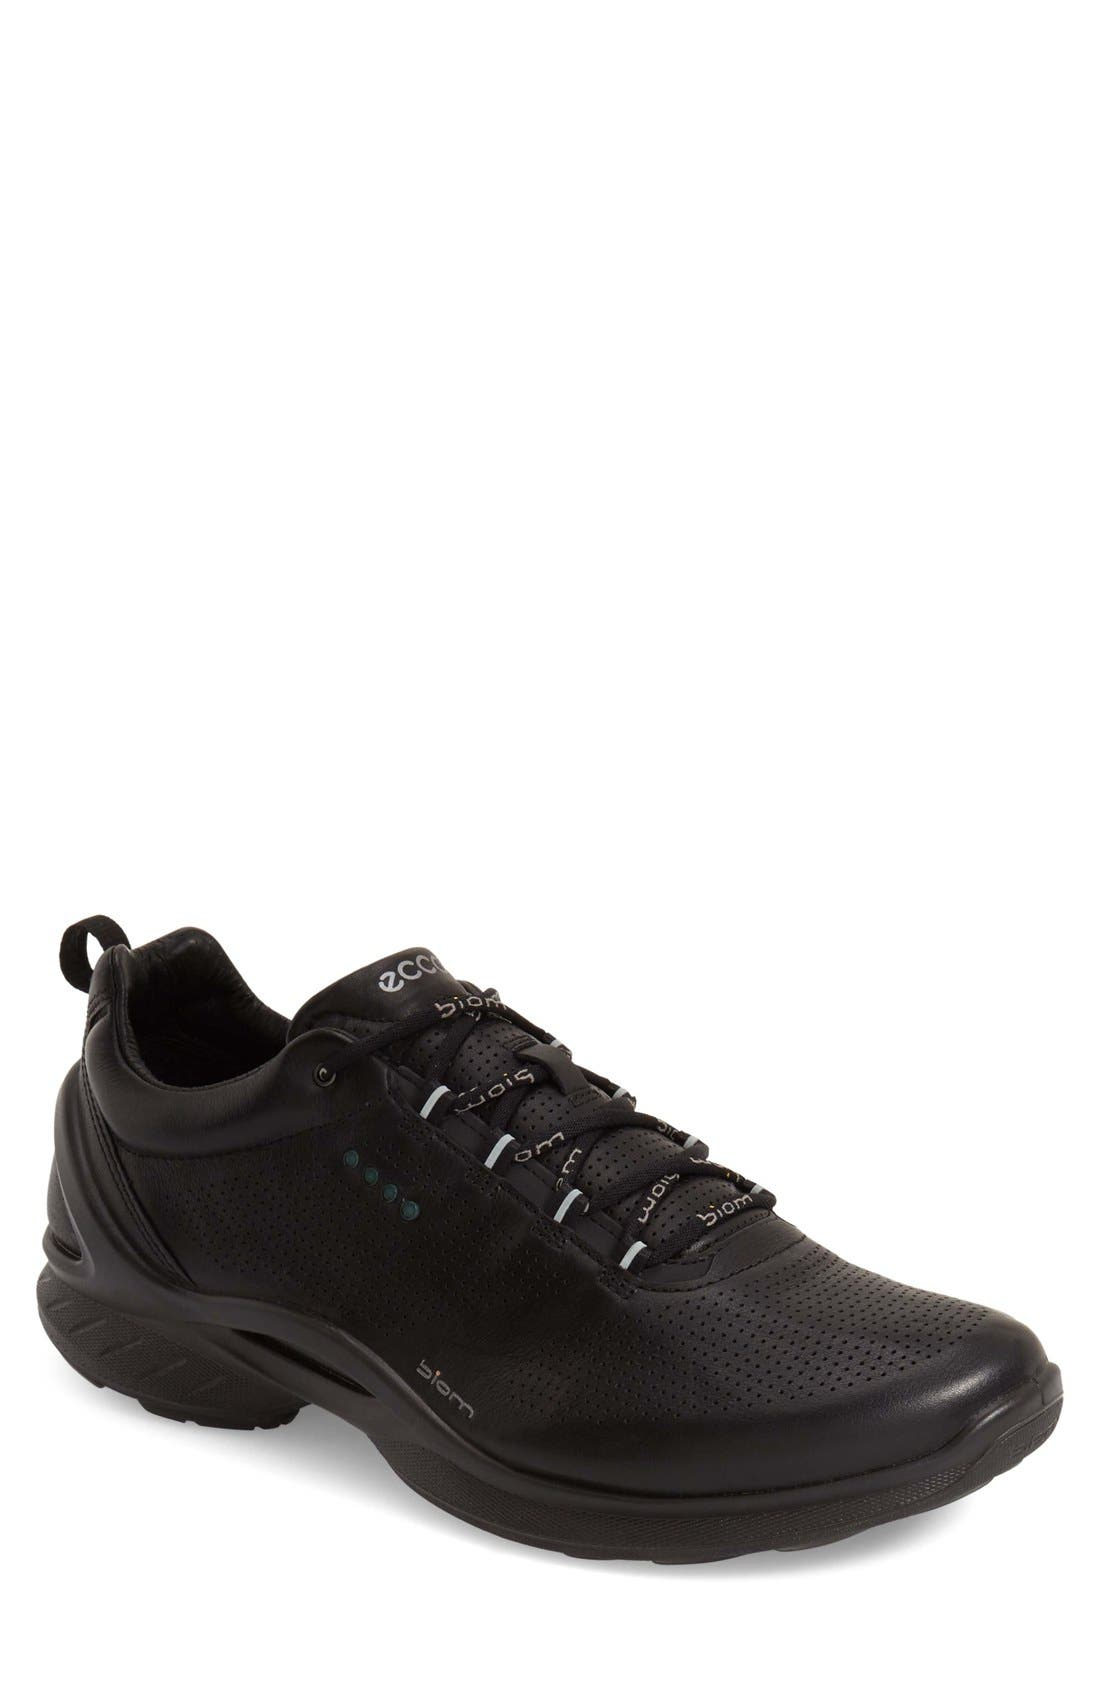 'BIOM Fjuel' Sneaker,                         Main,                         color, BLACK LEATHER